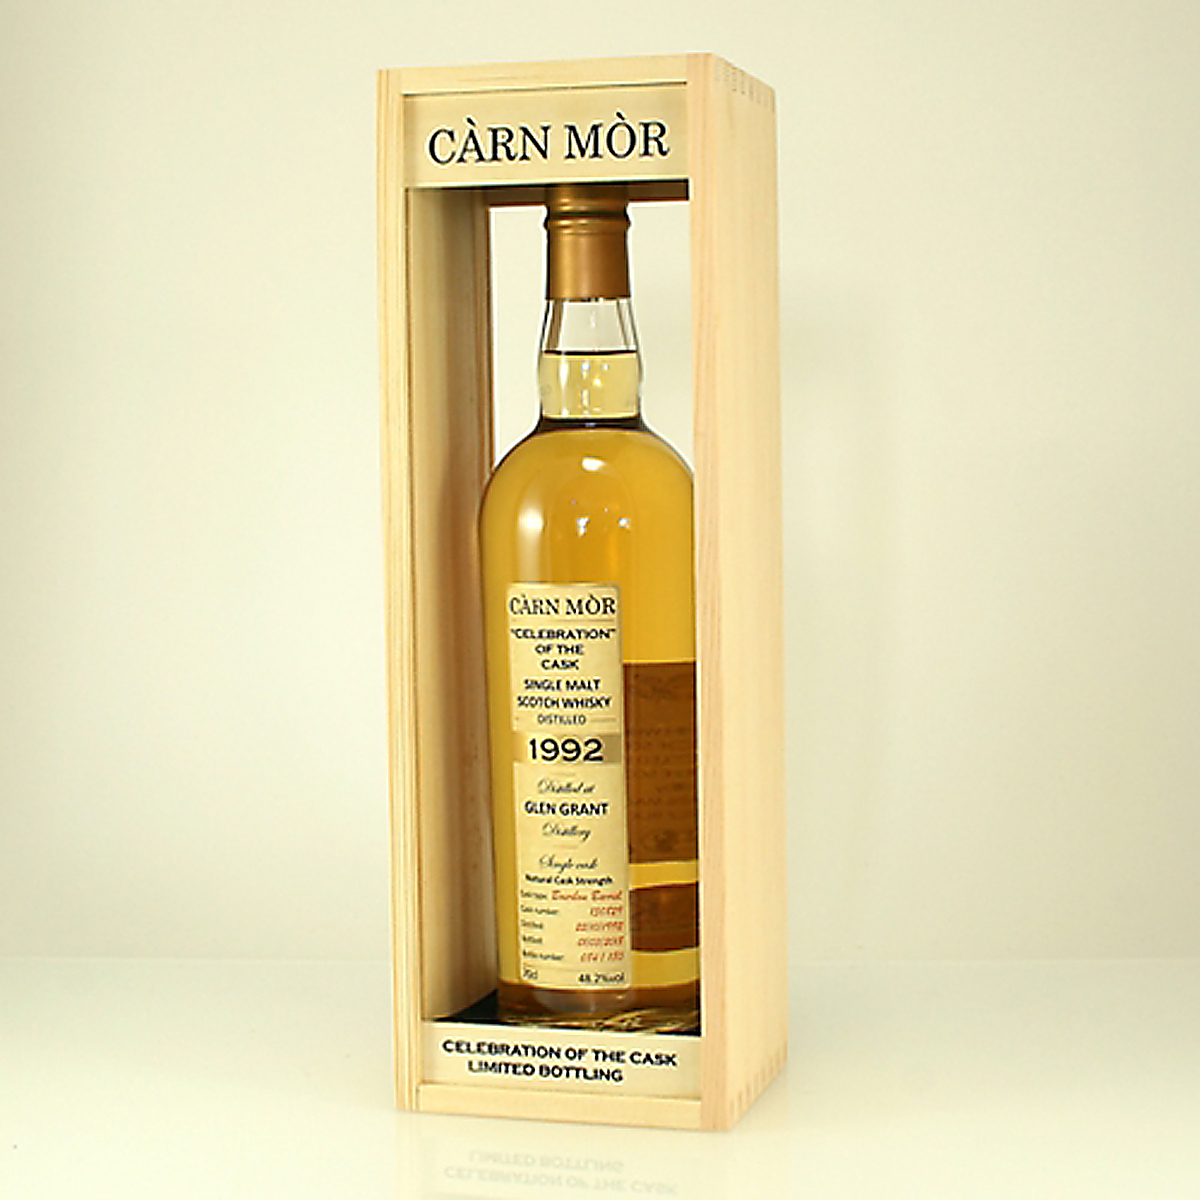 GLEN GRANT 1992 25 Y/O Celebration Of The Cask 48.2% 70cl